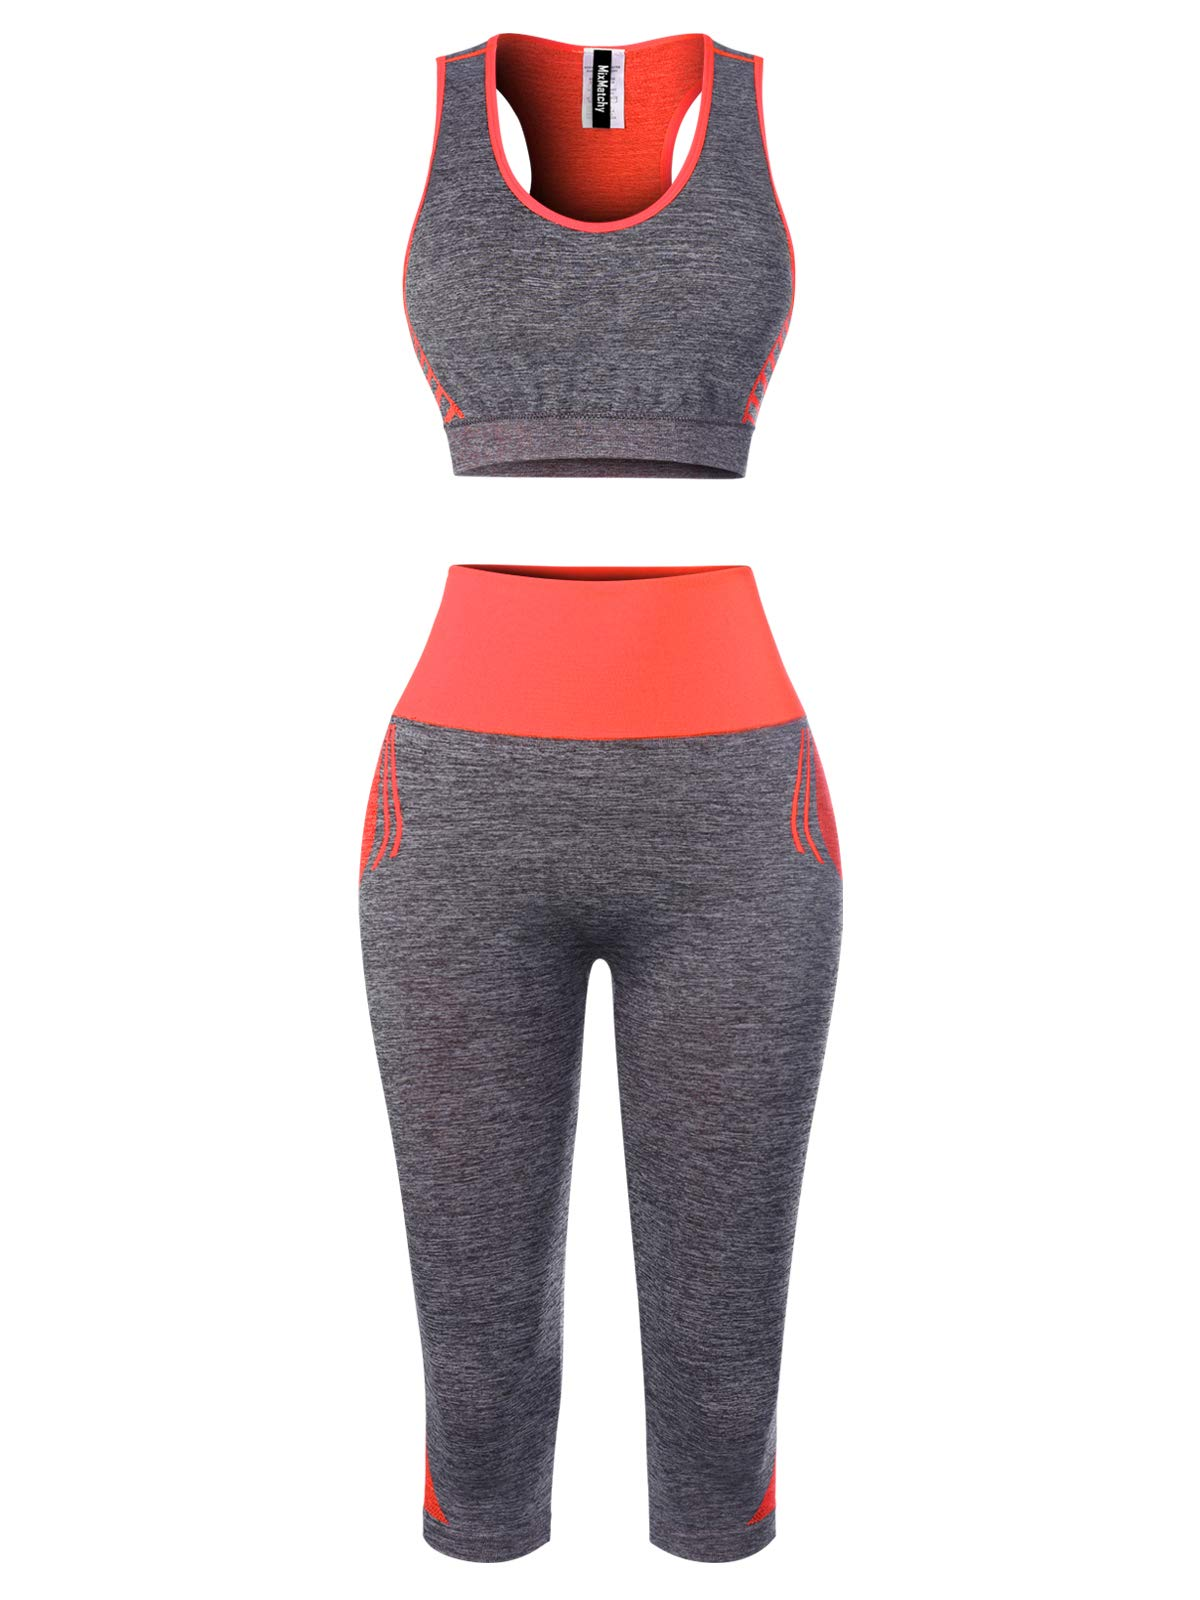 MixMatchy Women's Sports Gym Yoga Workout Activewear Sets Tank Crop Top & Capri Leggings Set Orange ONE by MixMatchy